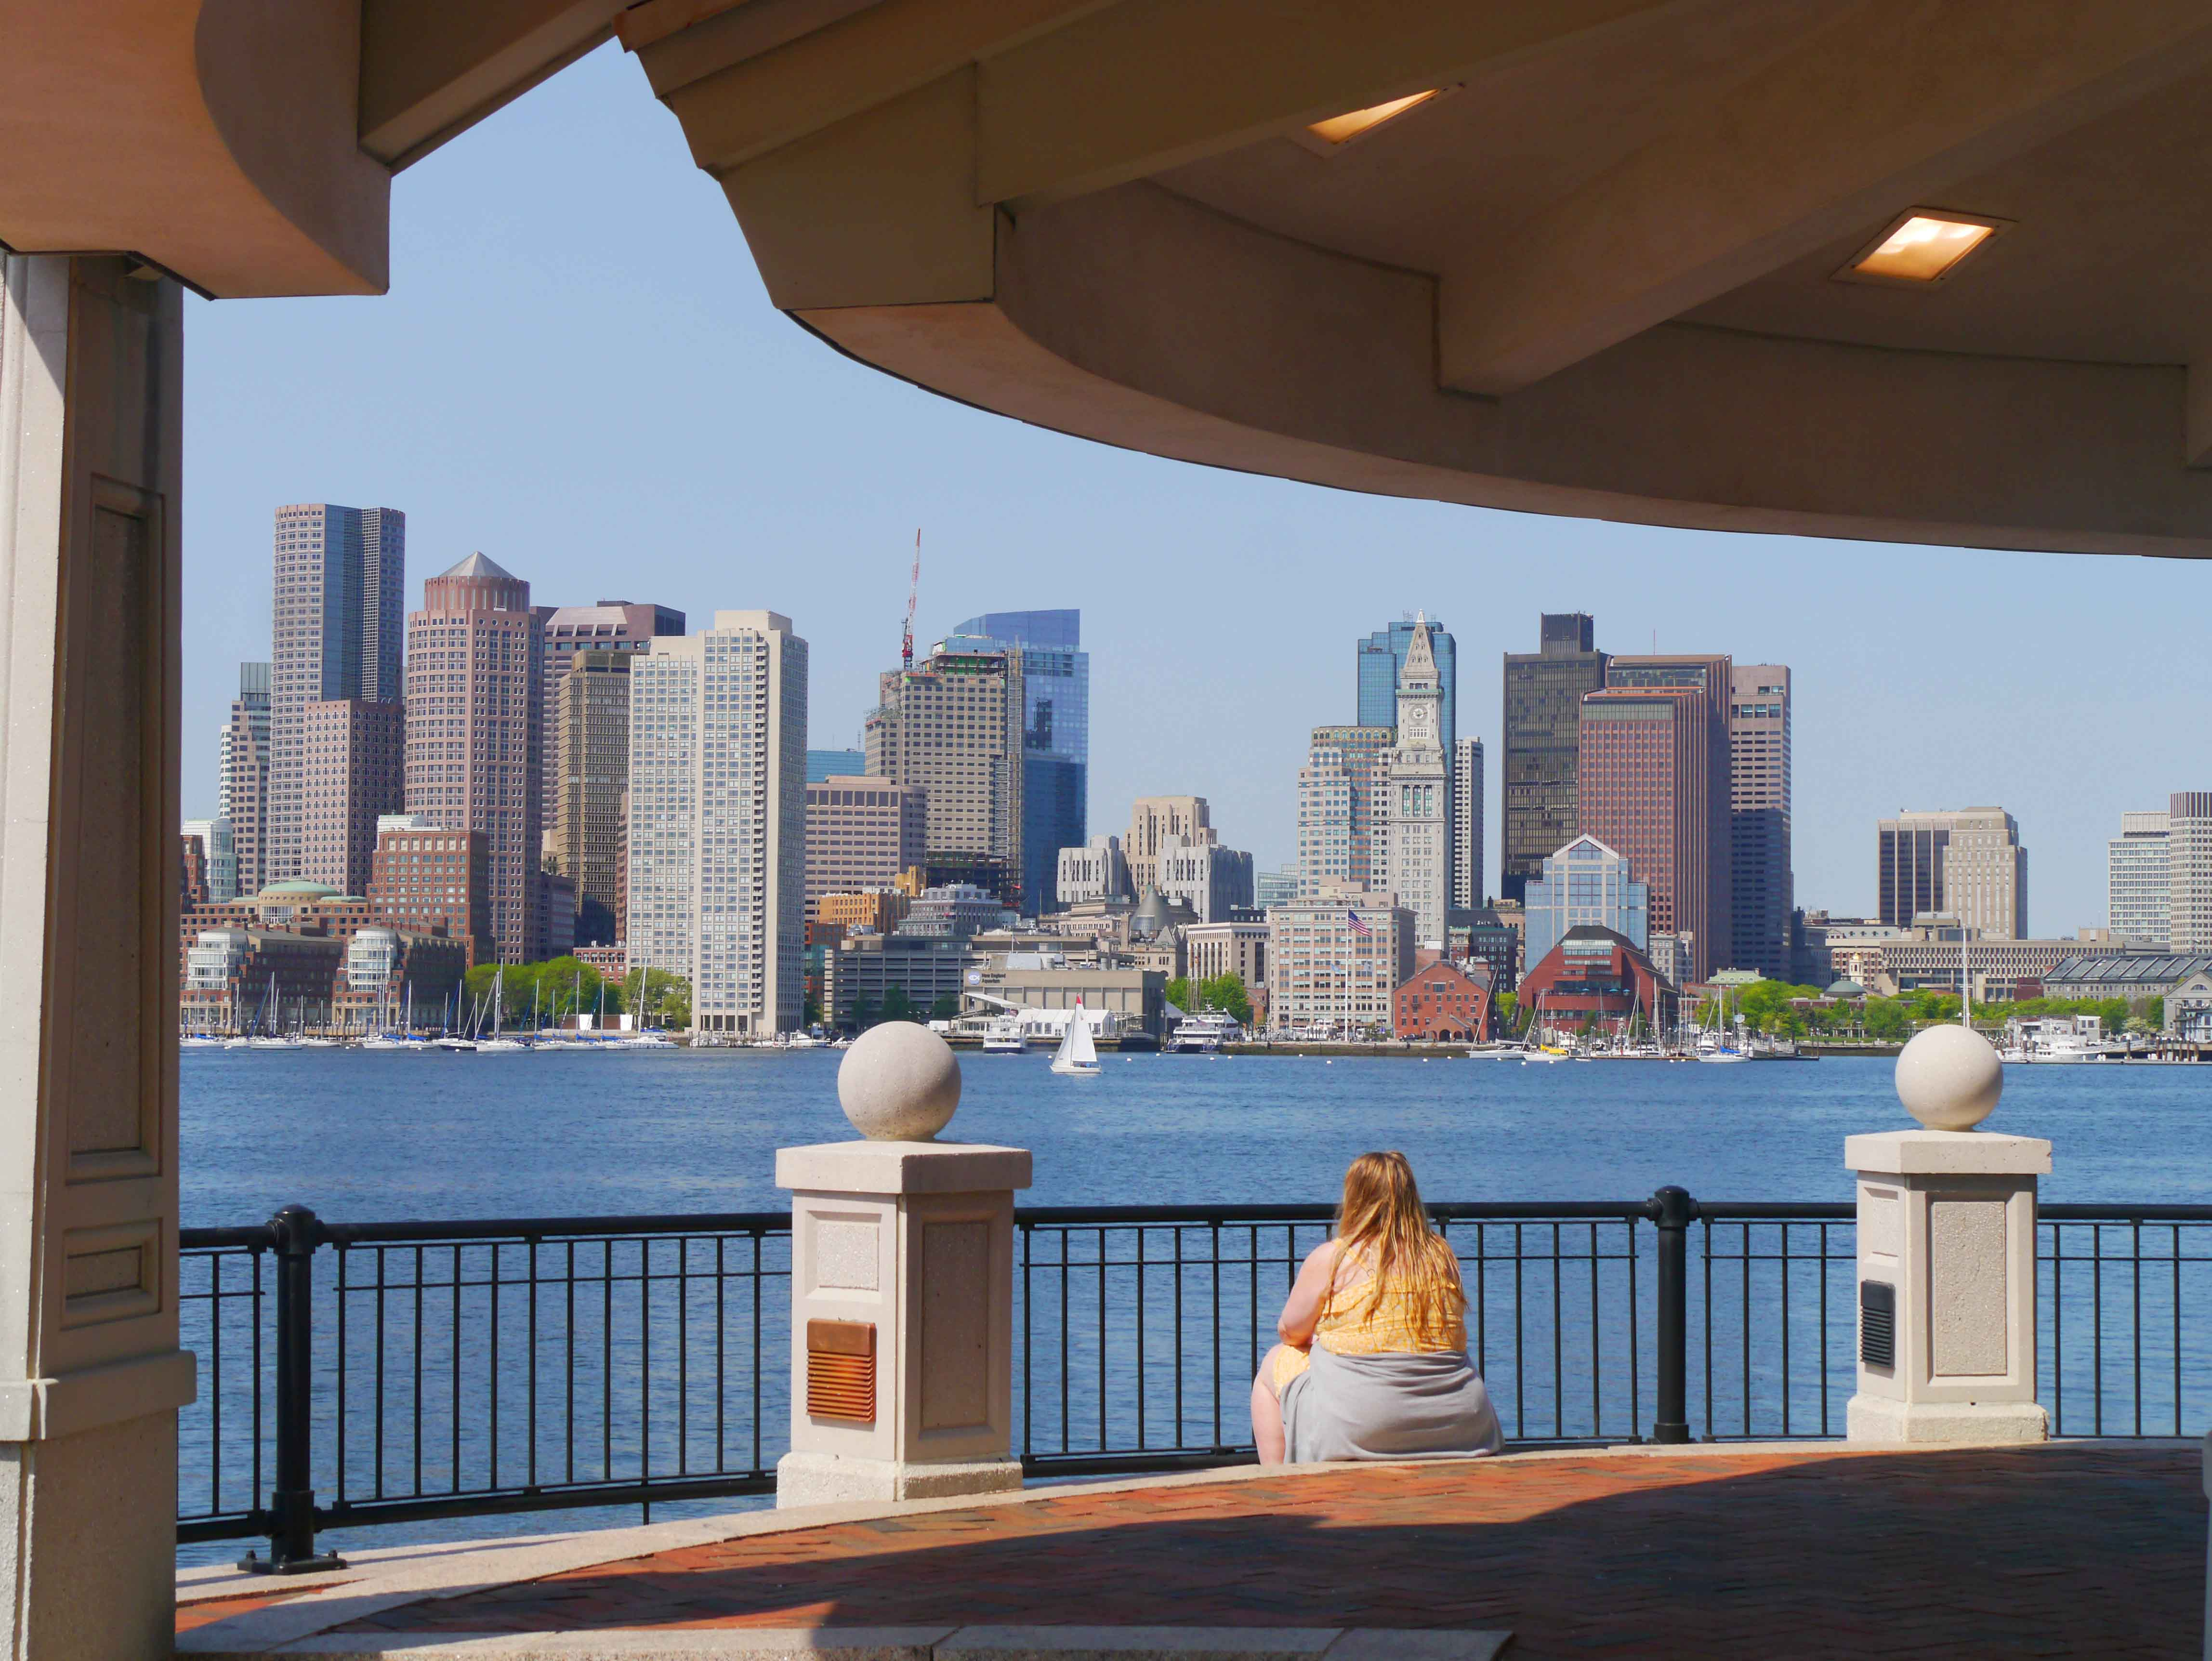 The lodge at the tip of Piers Park offers splendid views of the downtown Boston waterfront.